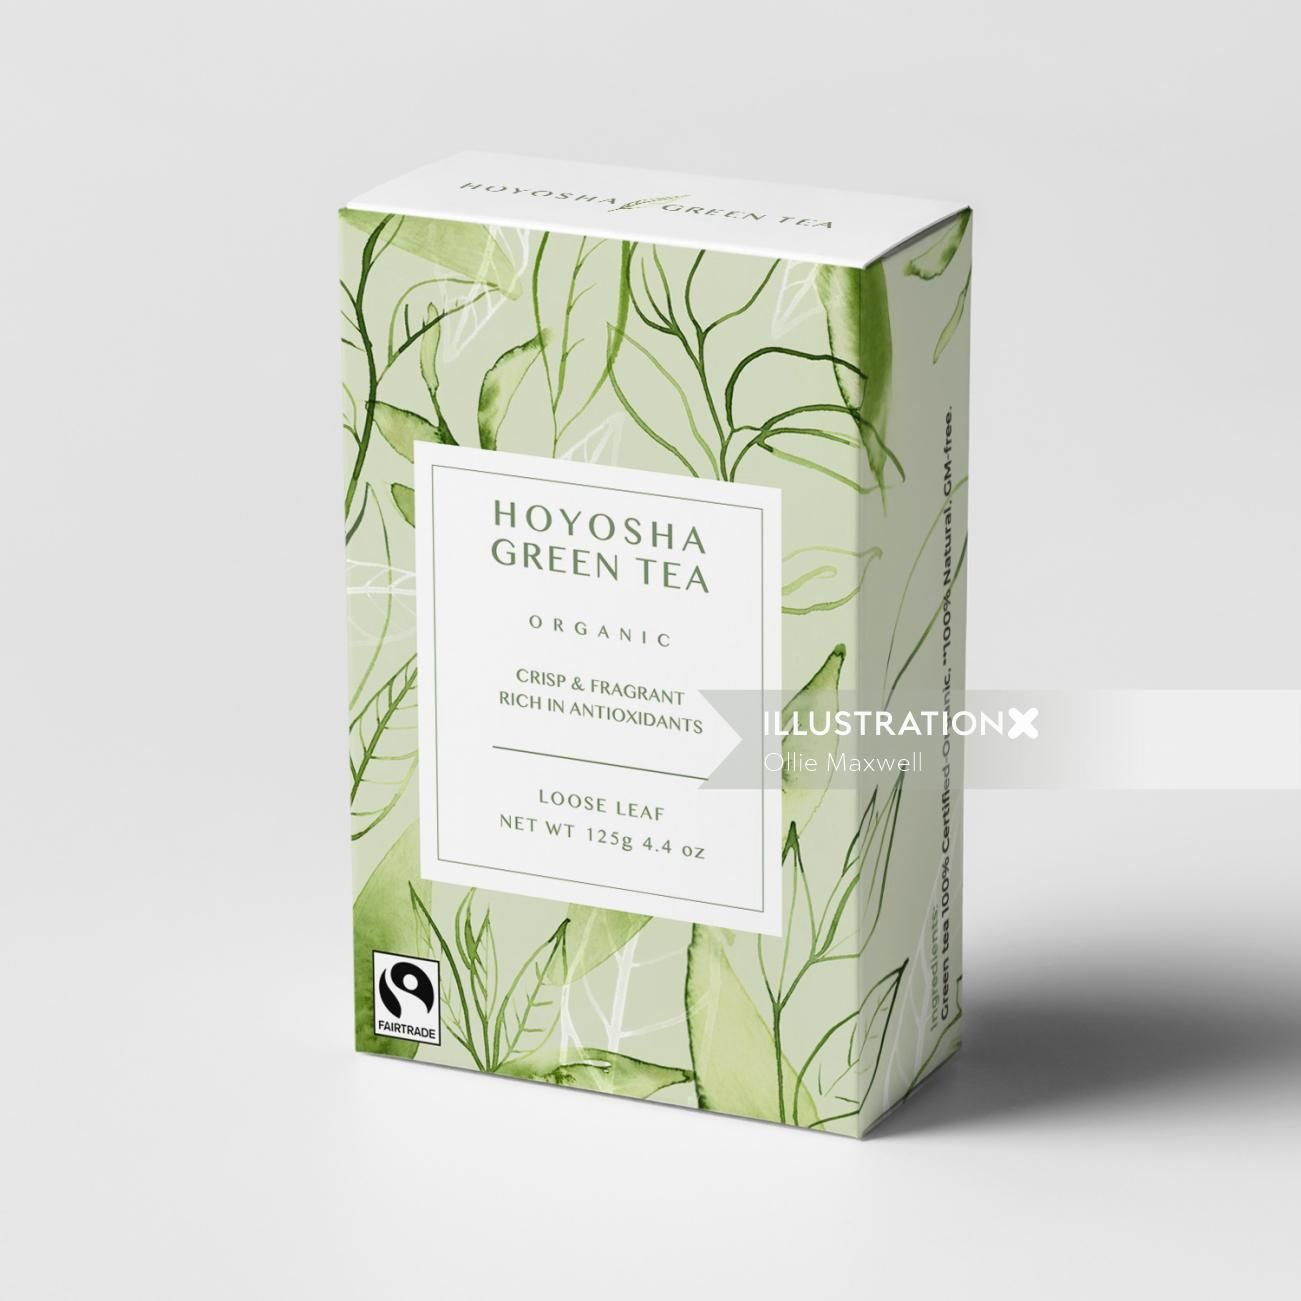 Photo of watercolour on Green tea box packaging